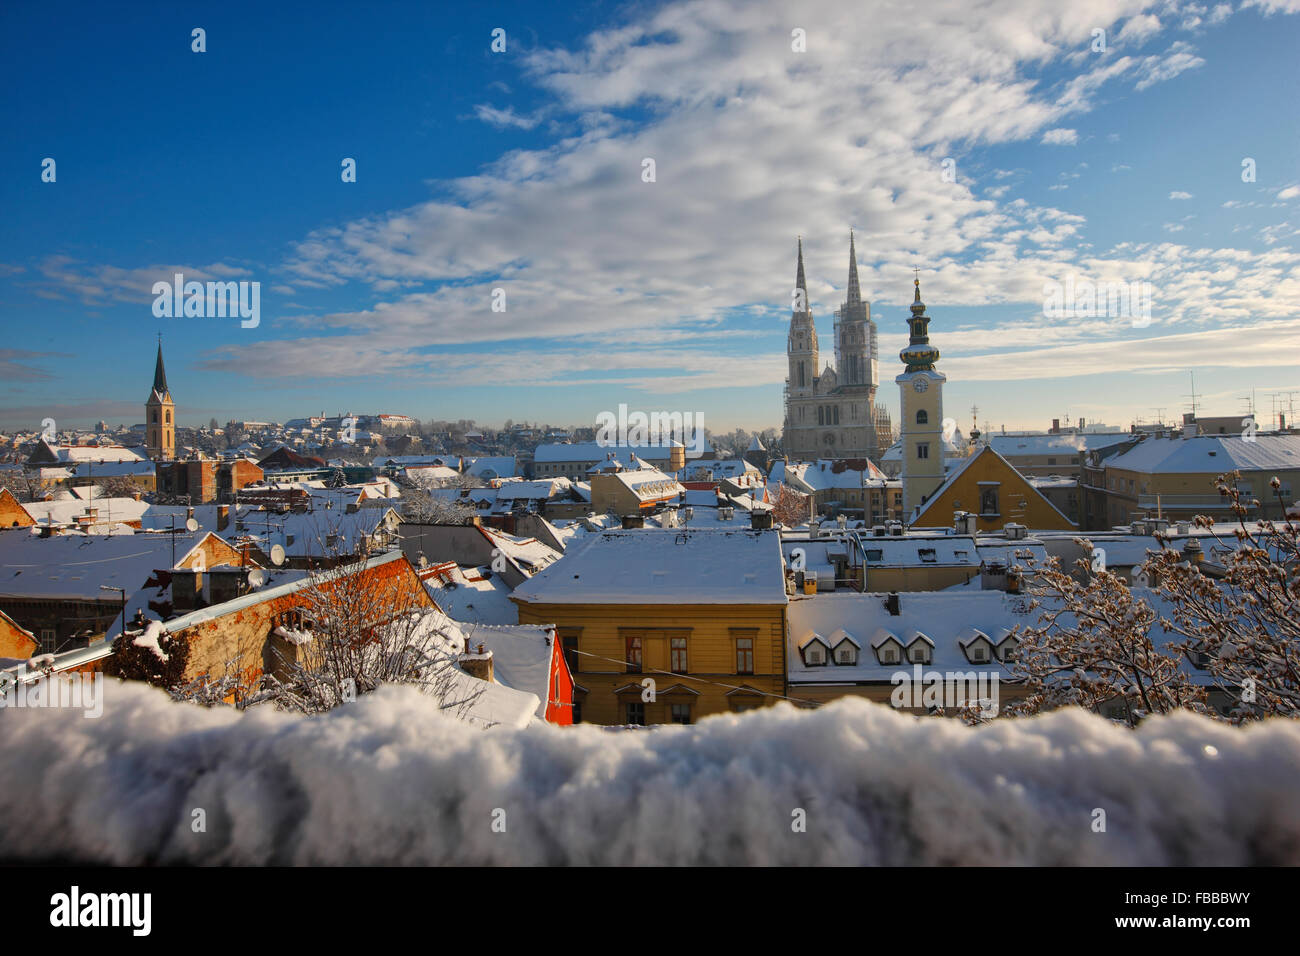 Panoramic view of winter in Zagreb - Stock Image